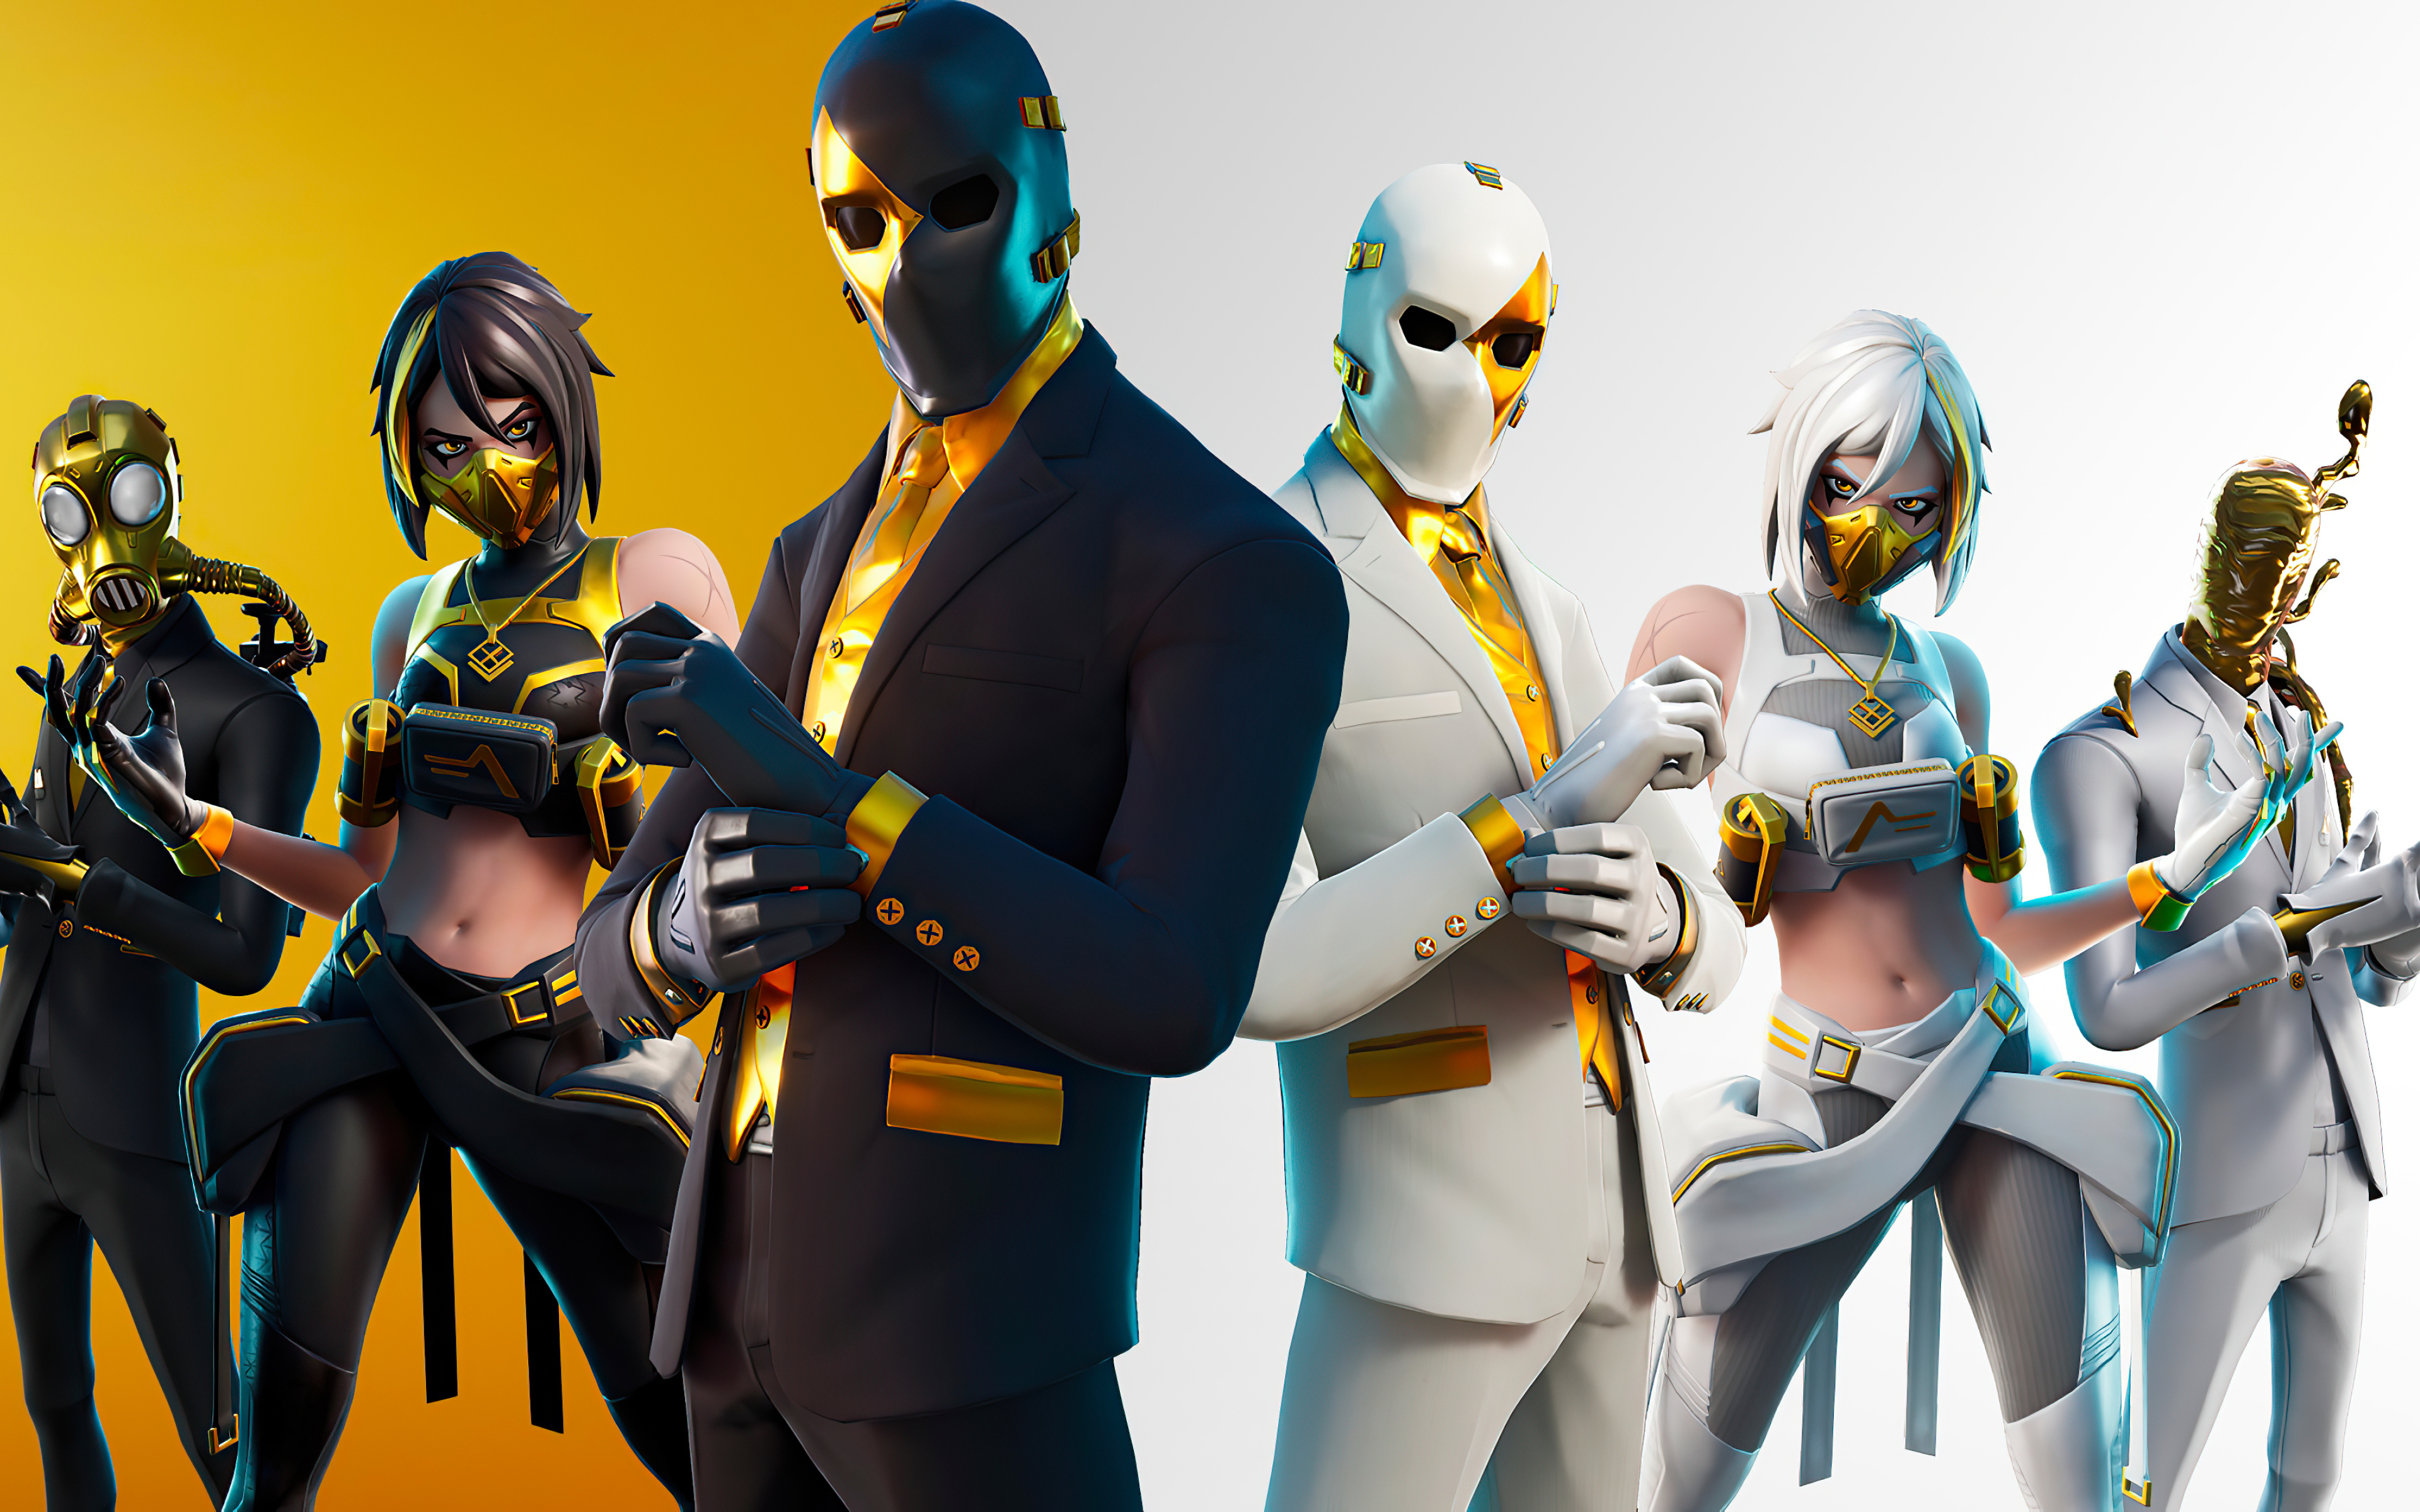 3840x2400 Fortnite Shadow And Ghost Team 4k 3840x2400 Resolution Wallpaper Hd Games 4k Wallpapers Images Photos And Background